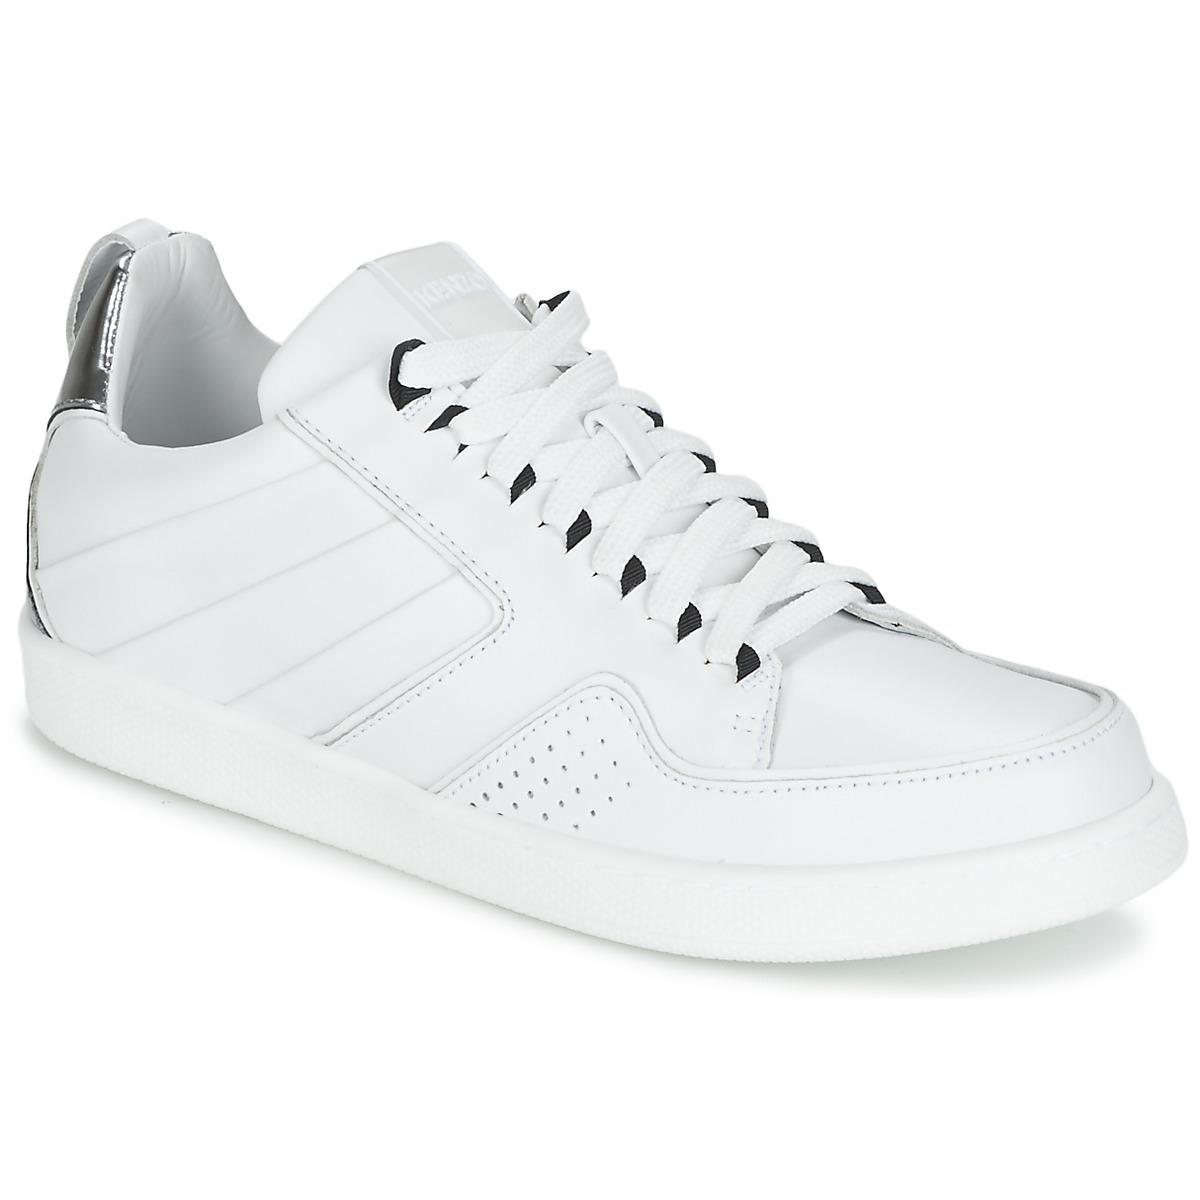 991284b03616 KENZO K-fly Women s Shoes (trainers) In White in White - Lyst